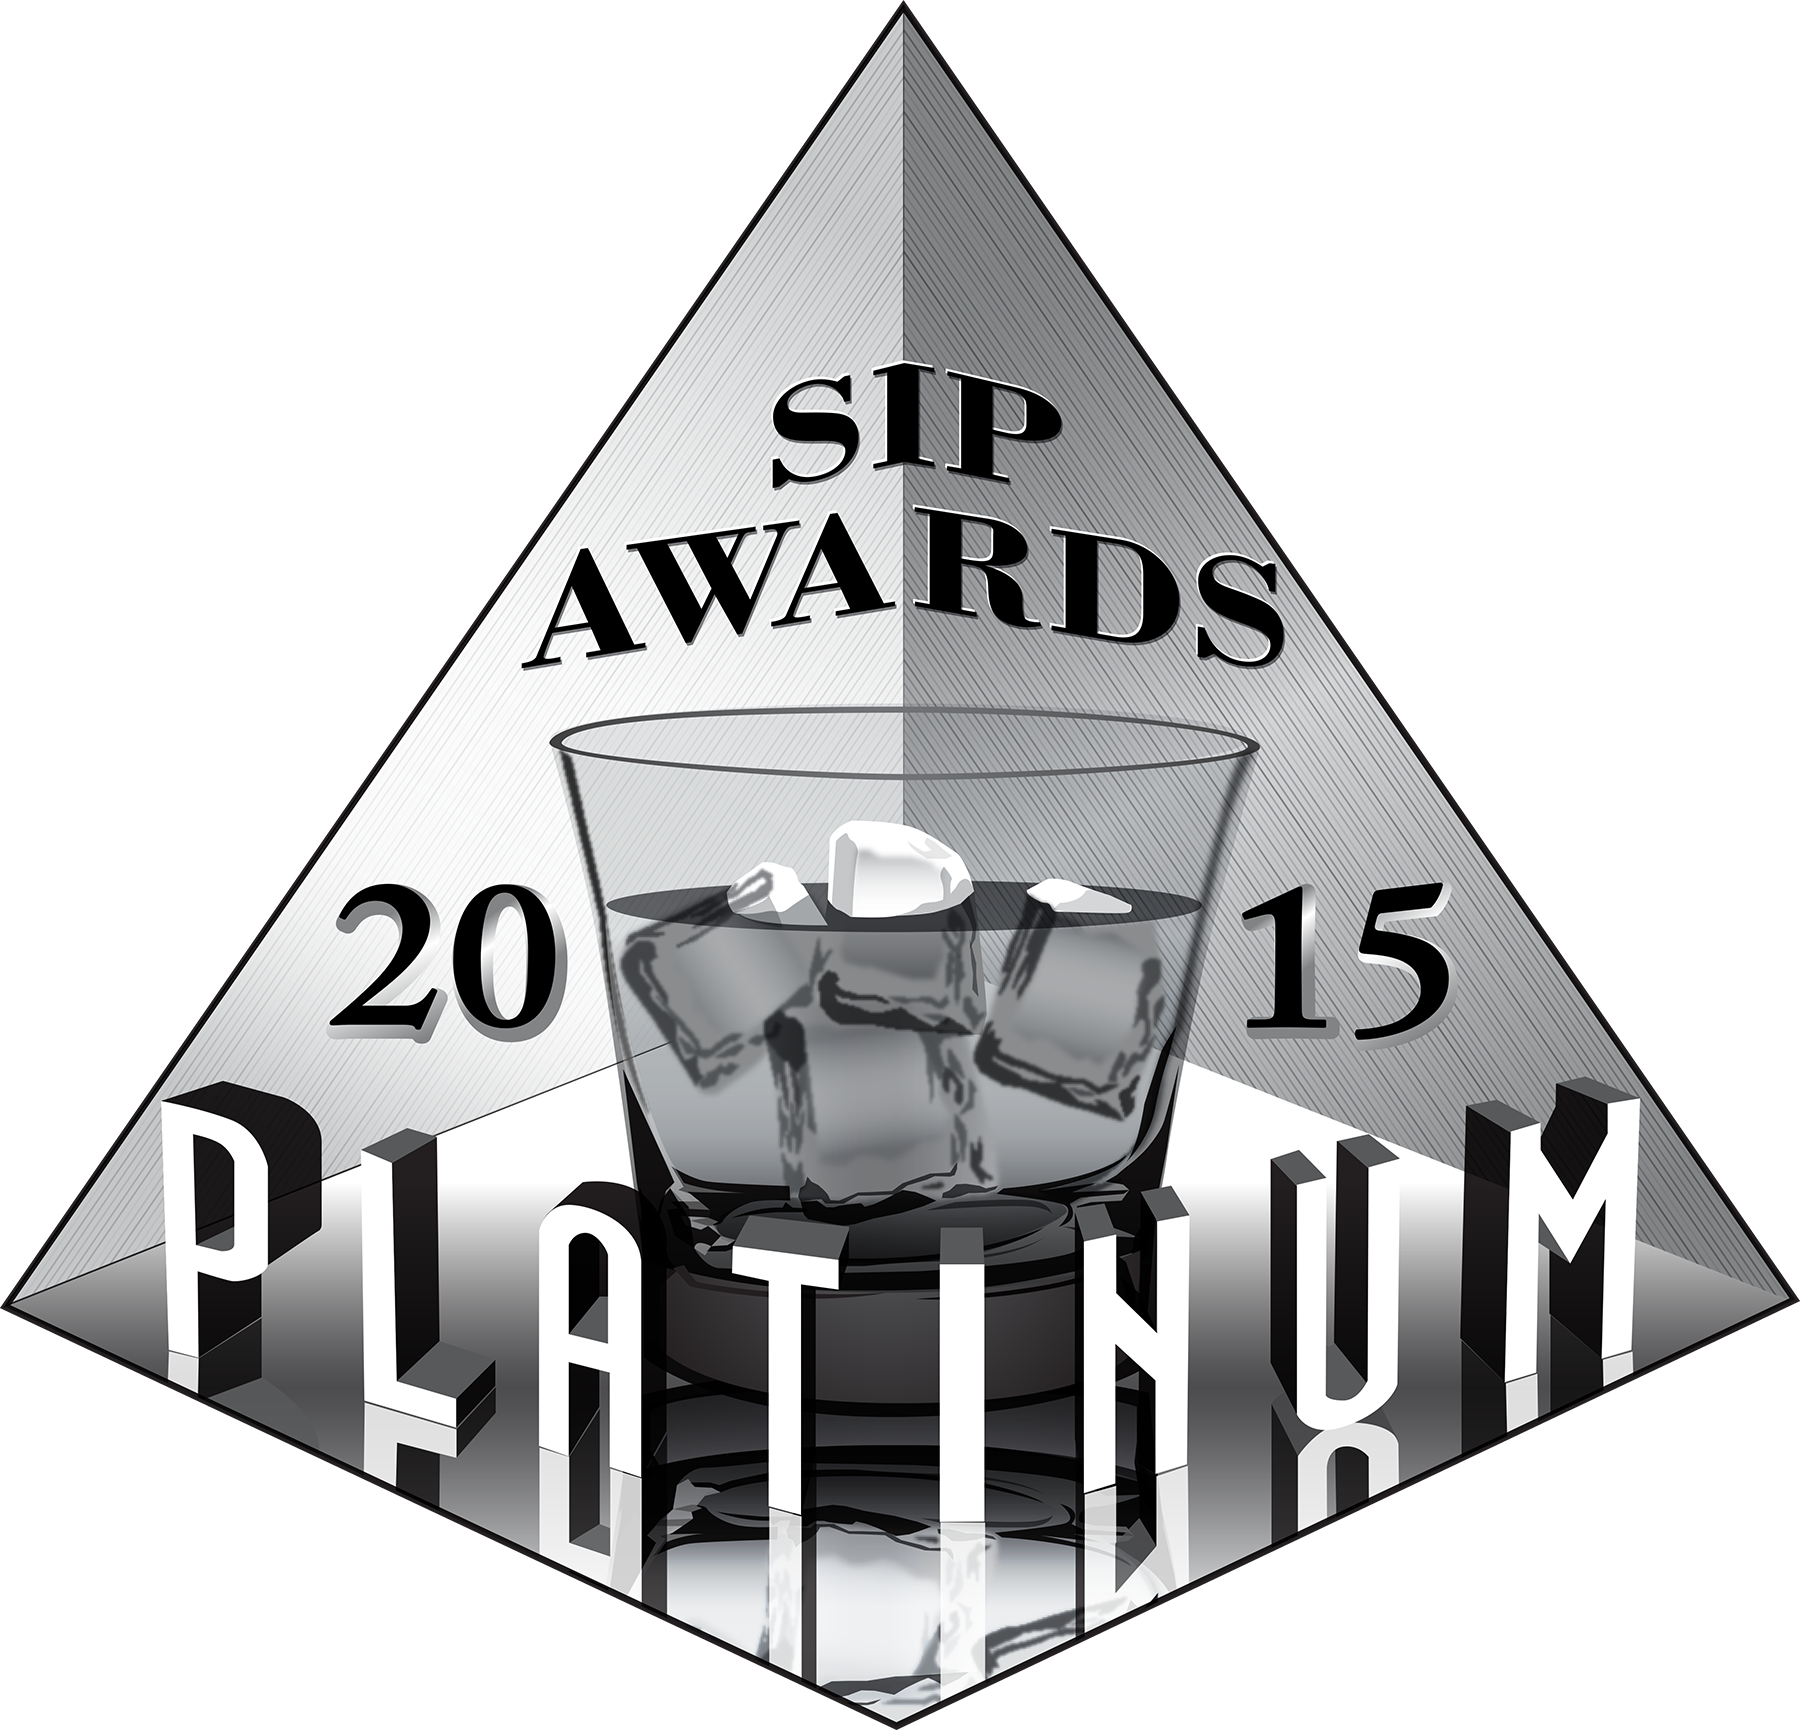 The Spirits International Prestige (SIP) Awards